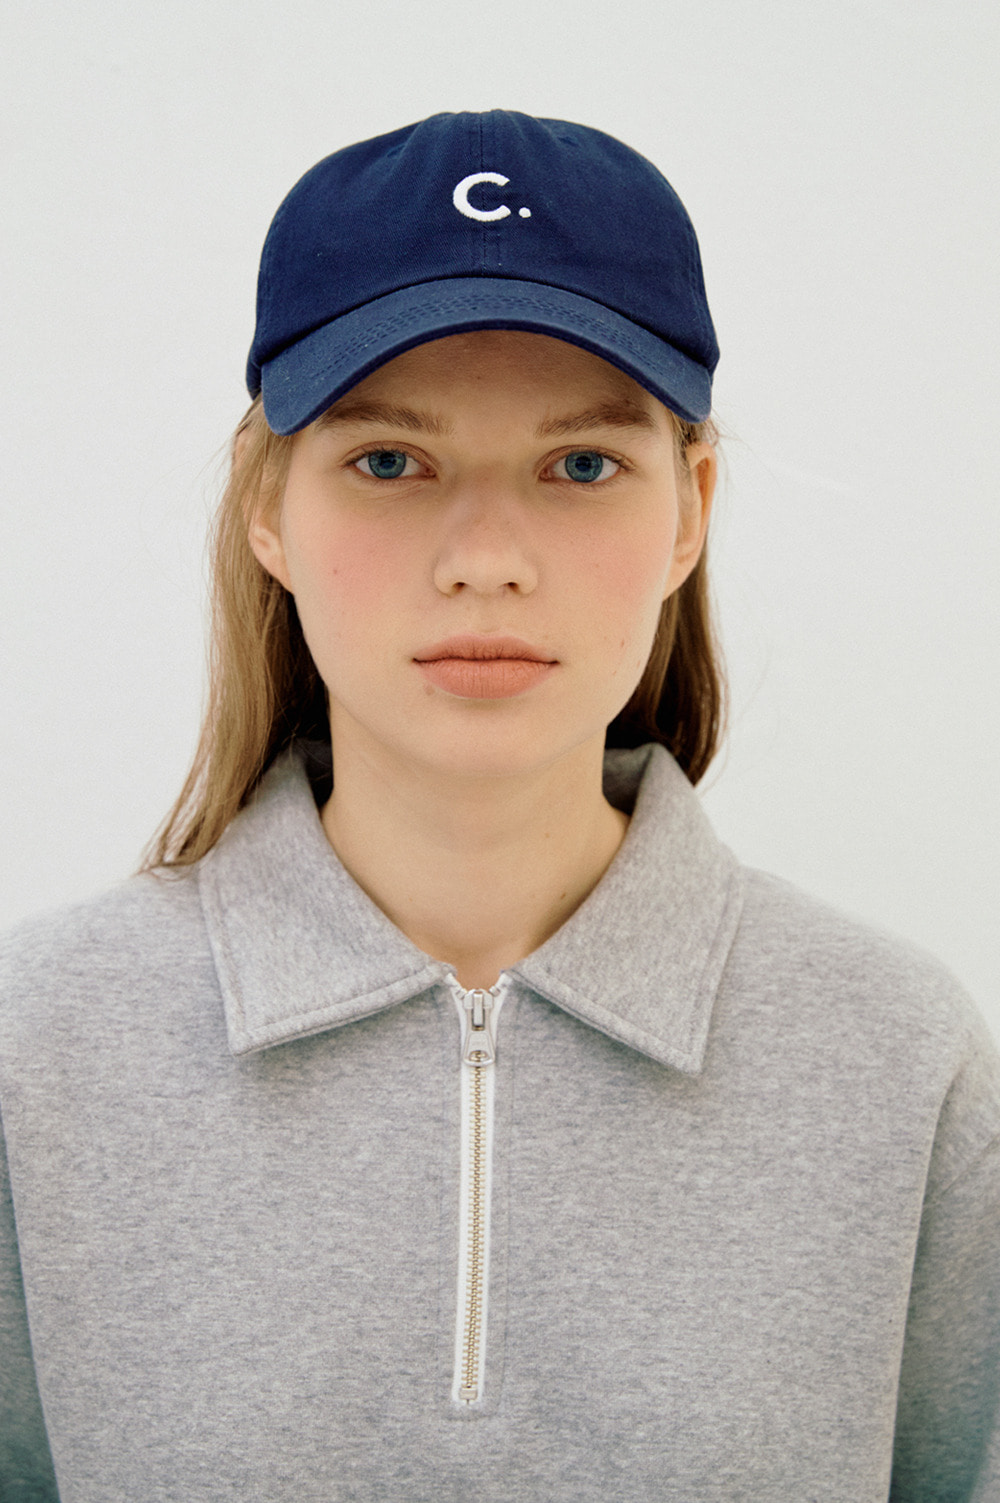 Basic Fit Ball Cap (Navy)